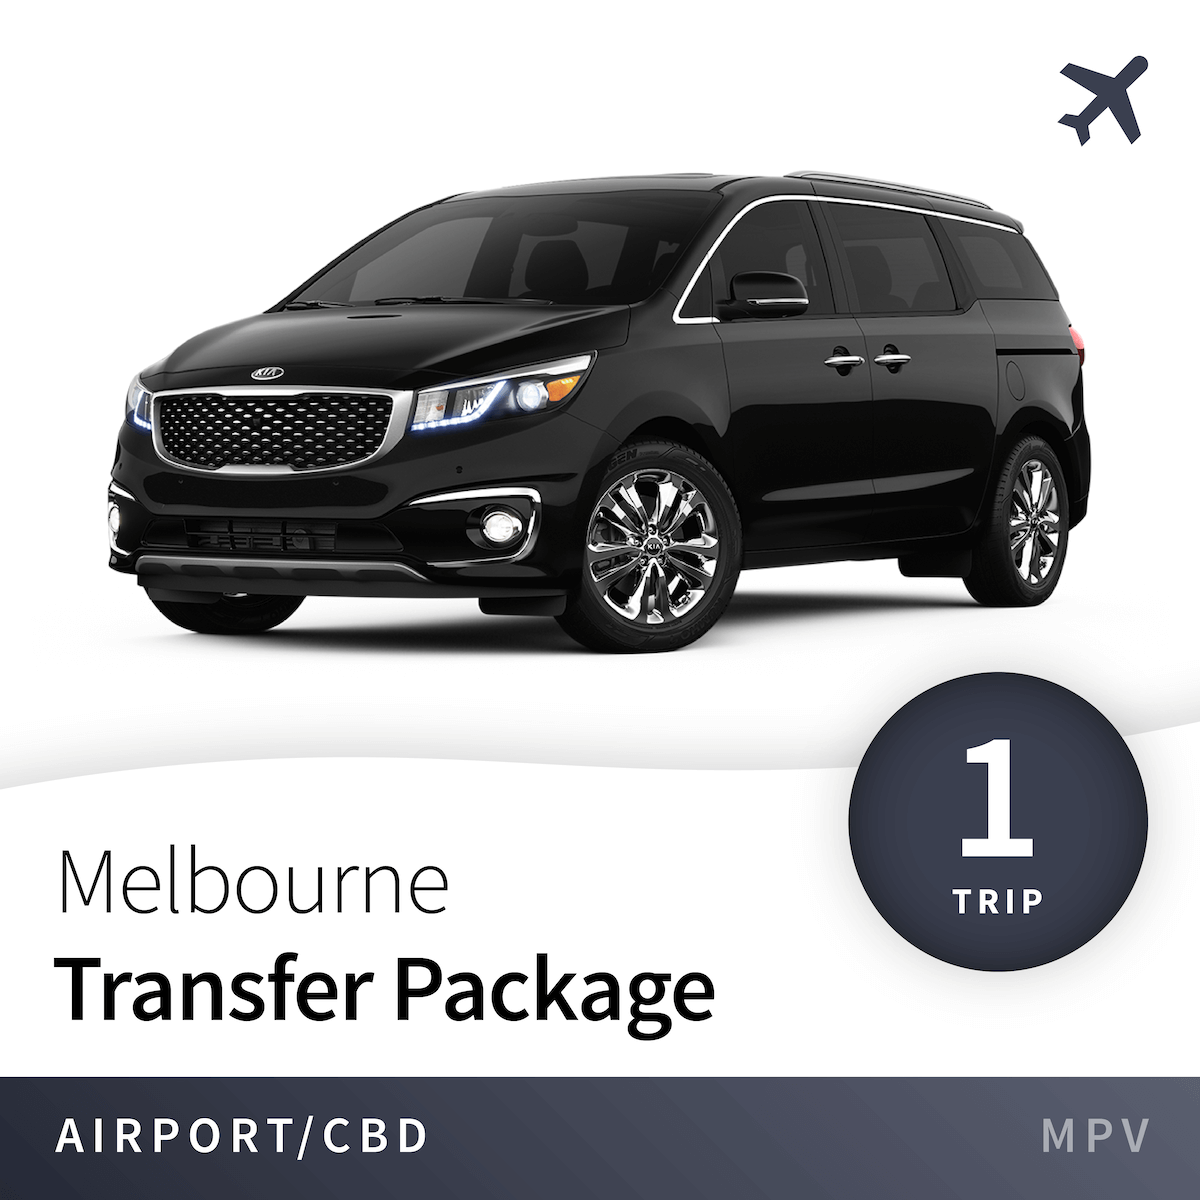 Melbourne Airport Transfer Package - MPV (1 Trip) 2